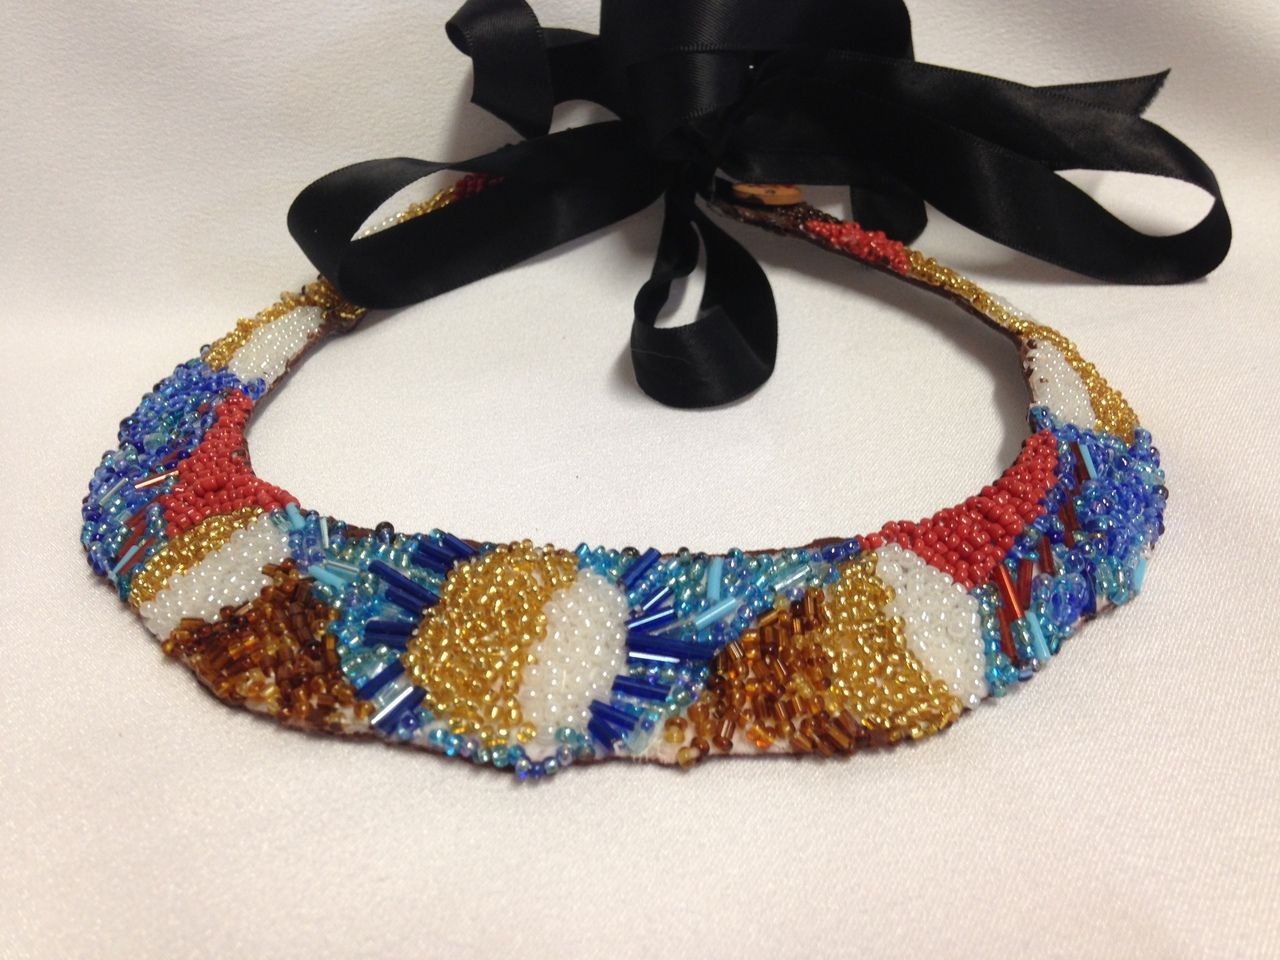 Stunning Embroidered Collar made in Brisbane, Australia | The Craft Gallery